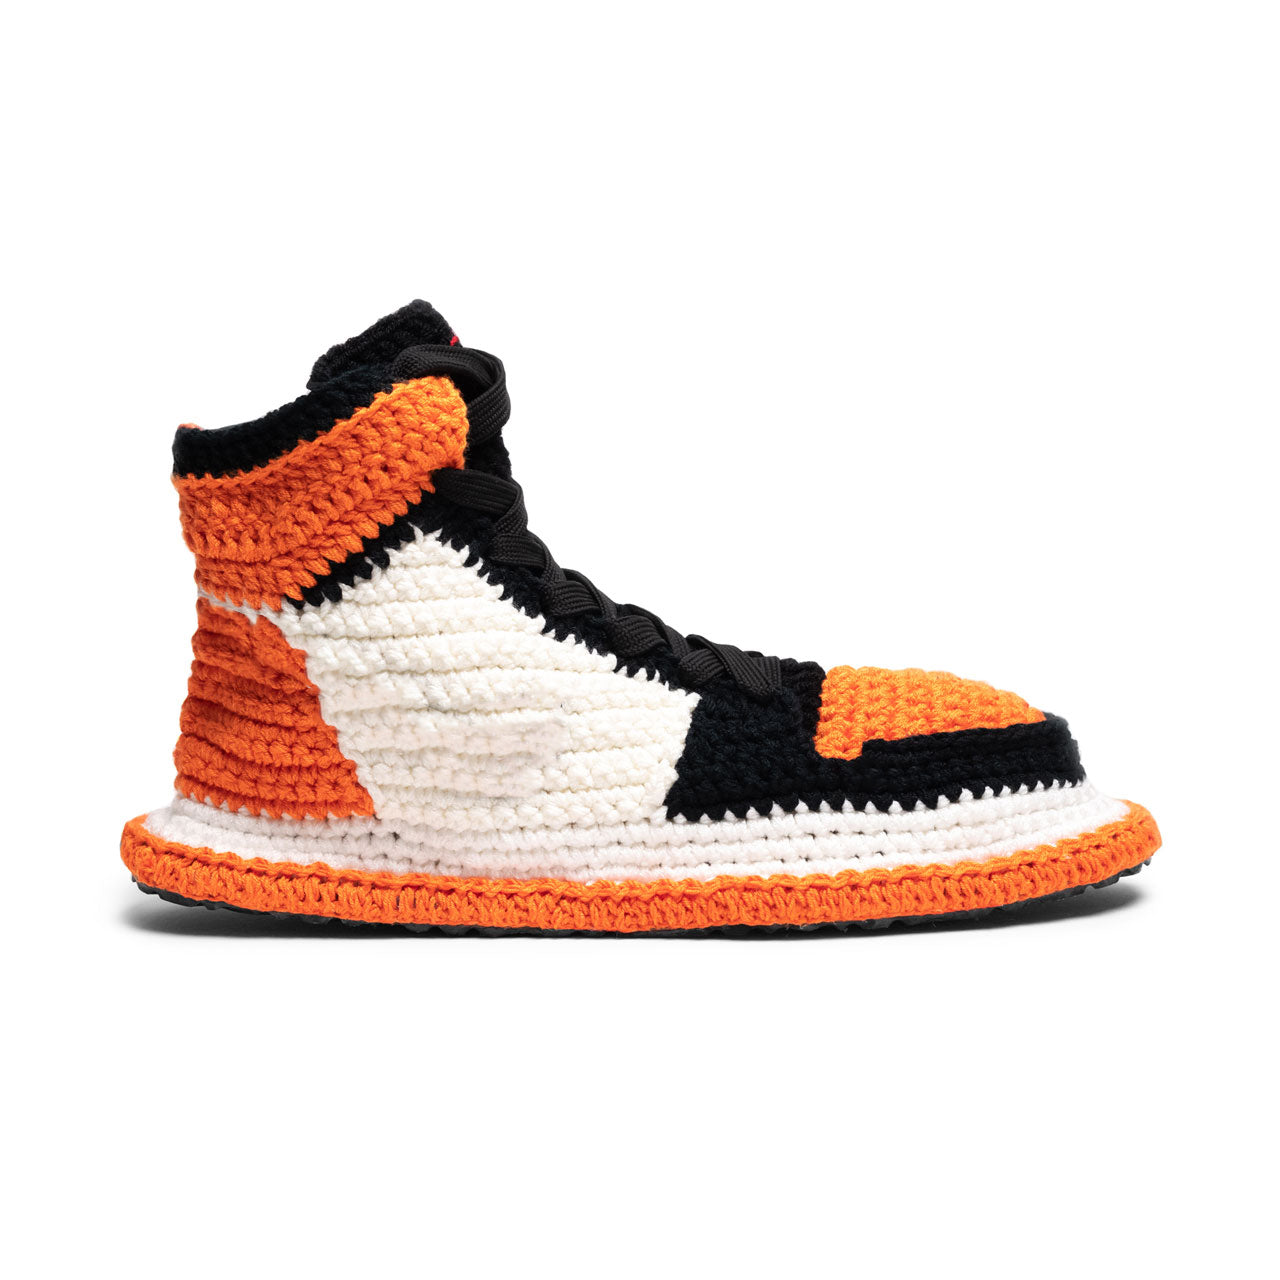 Fuggit Shattered Backboard Knit House Shoes